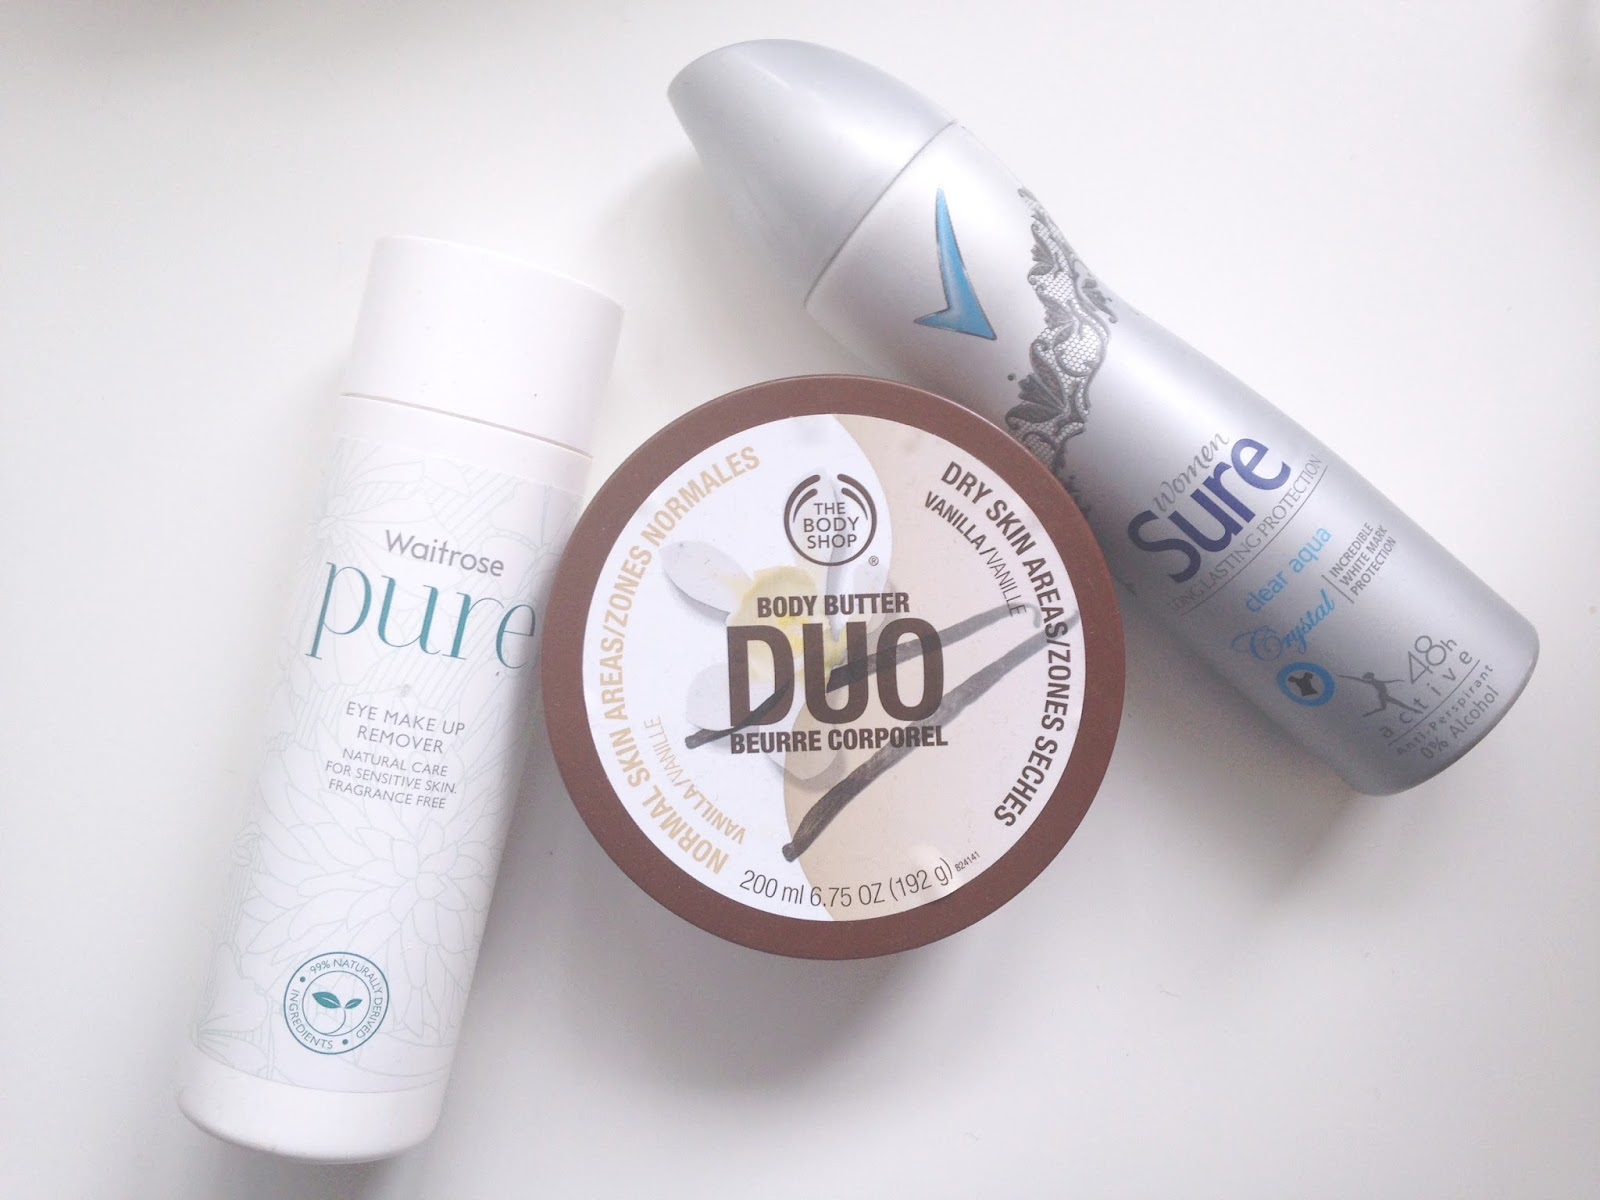 Sure Invisible Body Butter Duo Pure Eye Makeup Remover